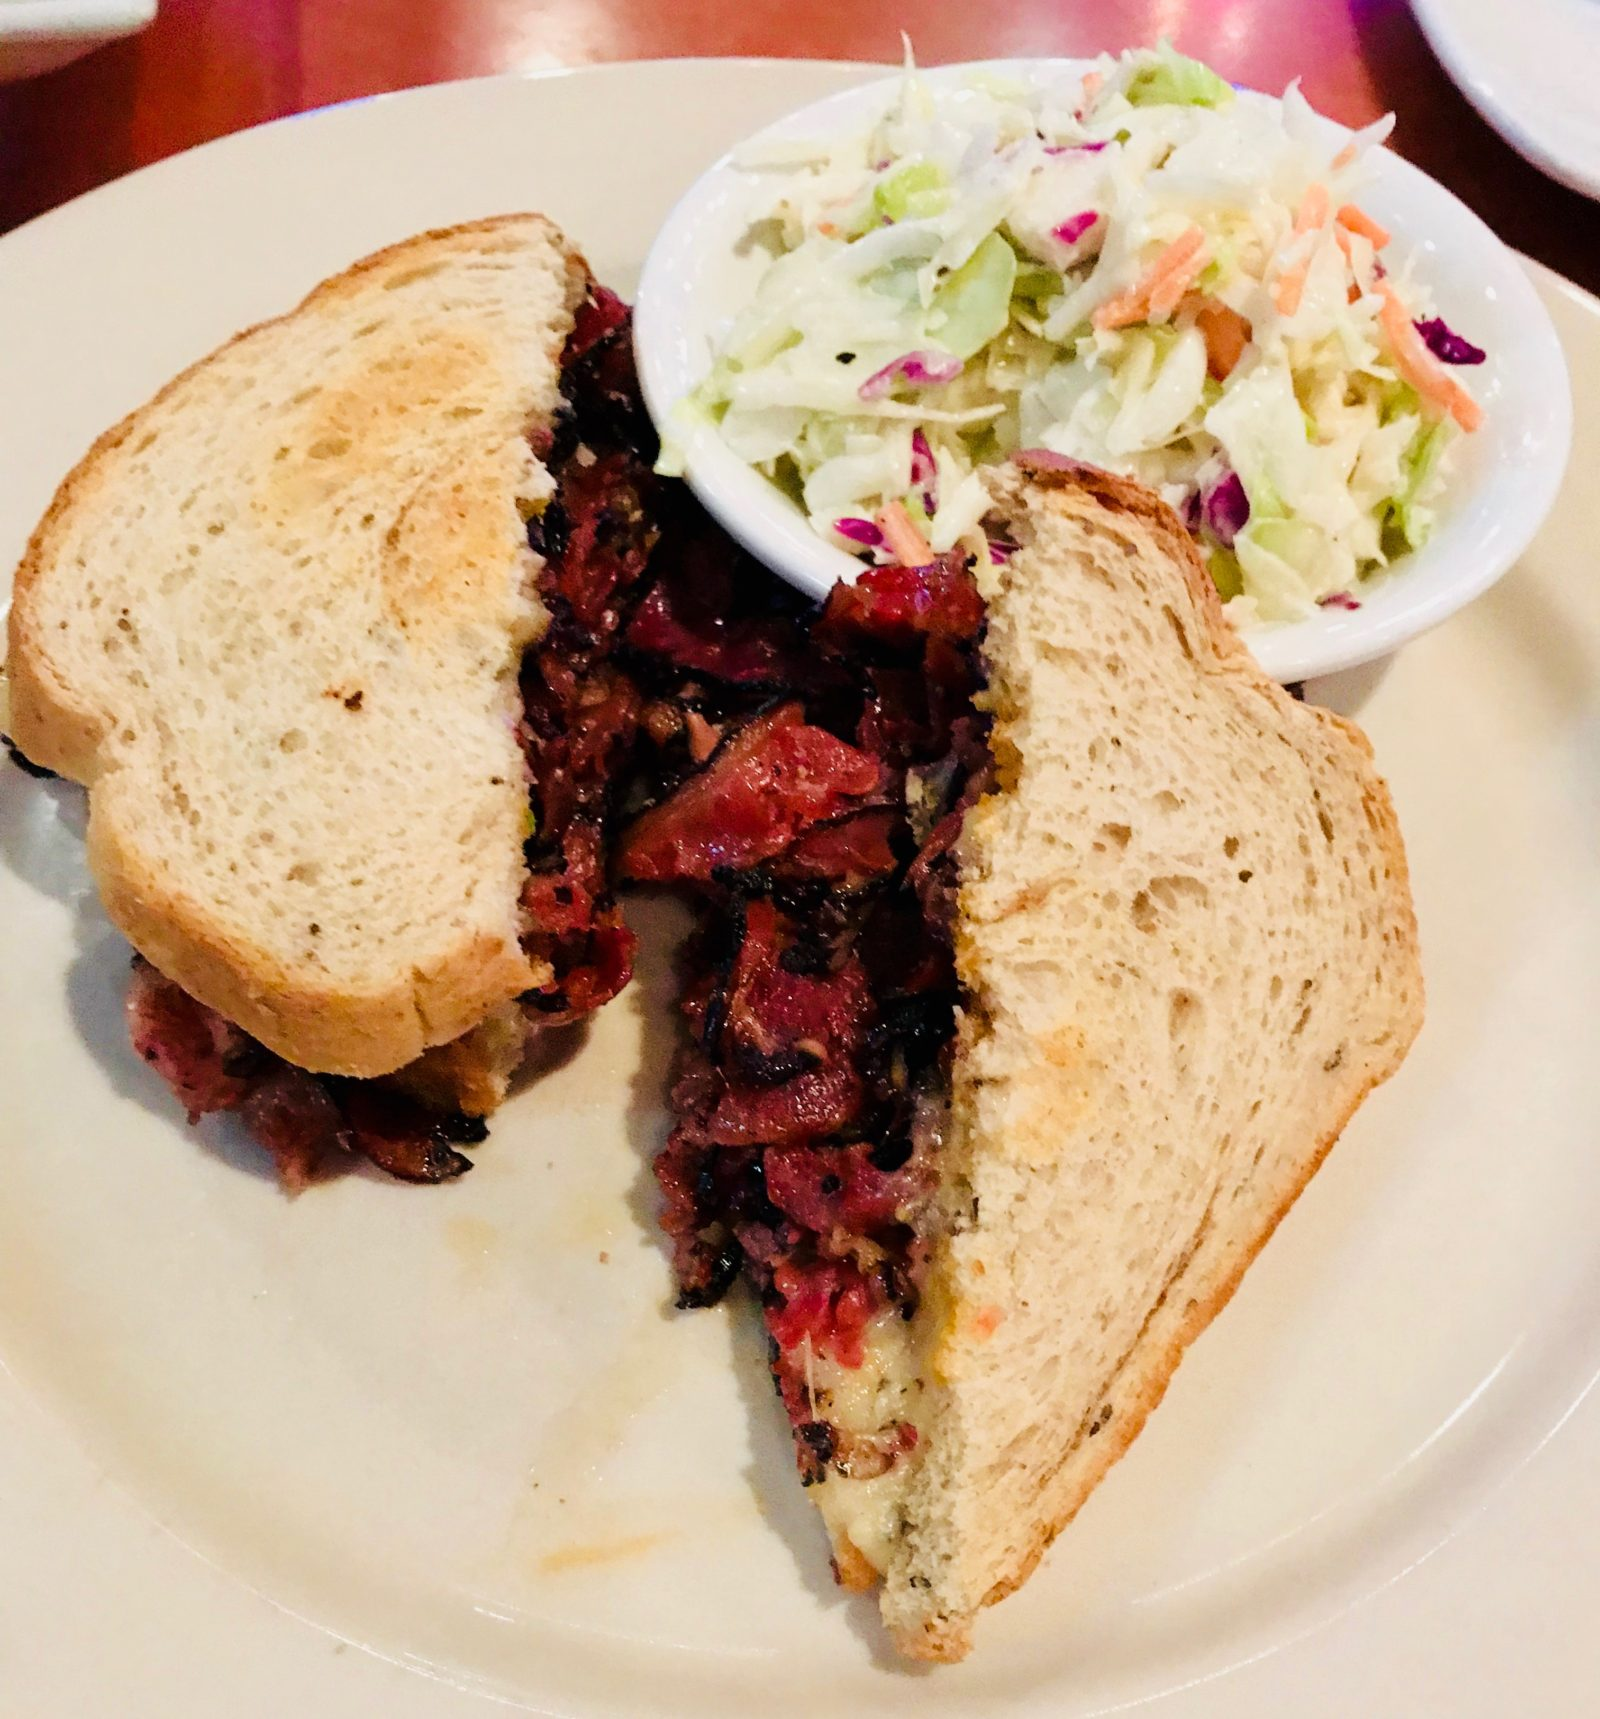 Pick of the Week - Lakeside Bar and Grill - Hot Pastrami Sandwich